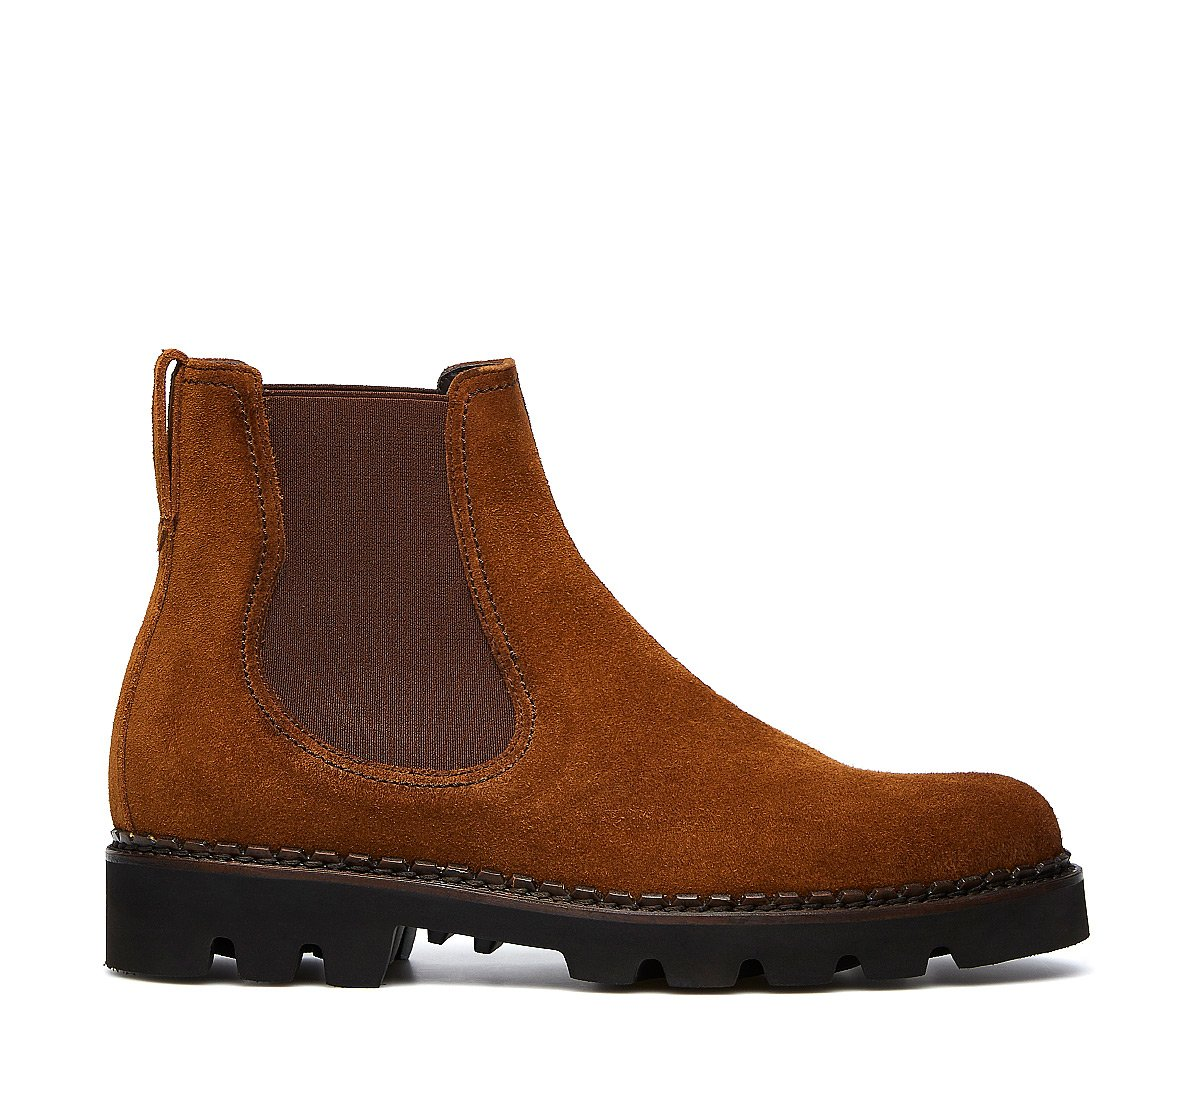 Beatle boots in soft suede calfskin